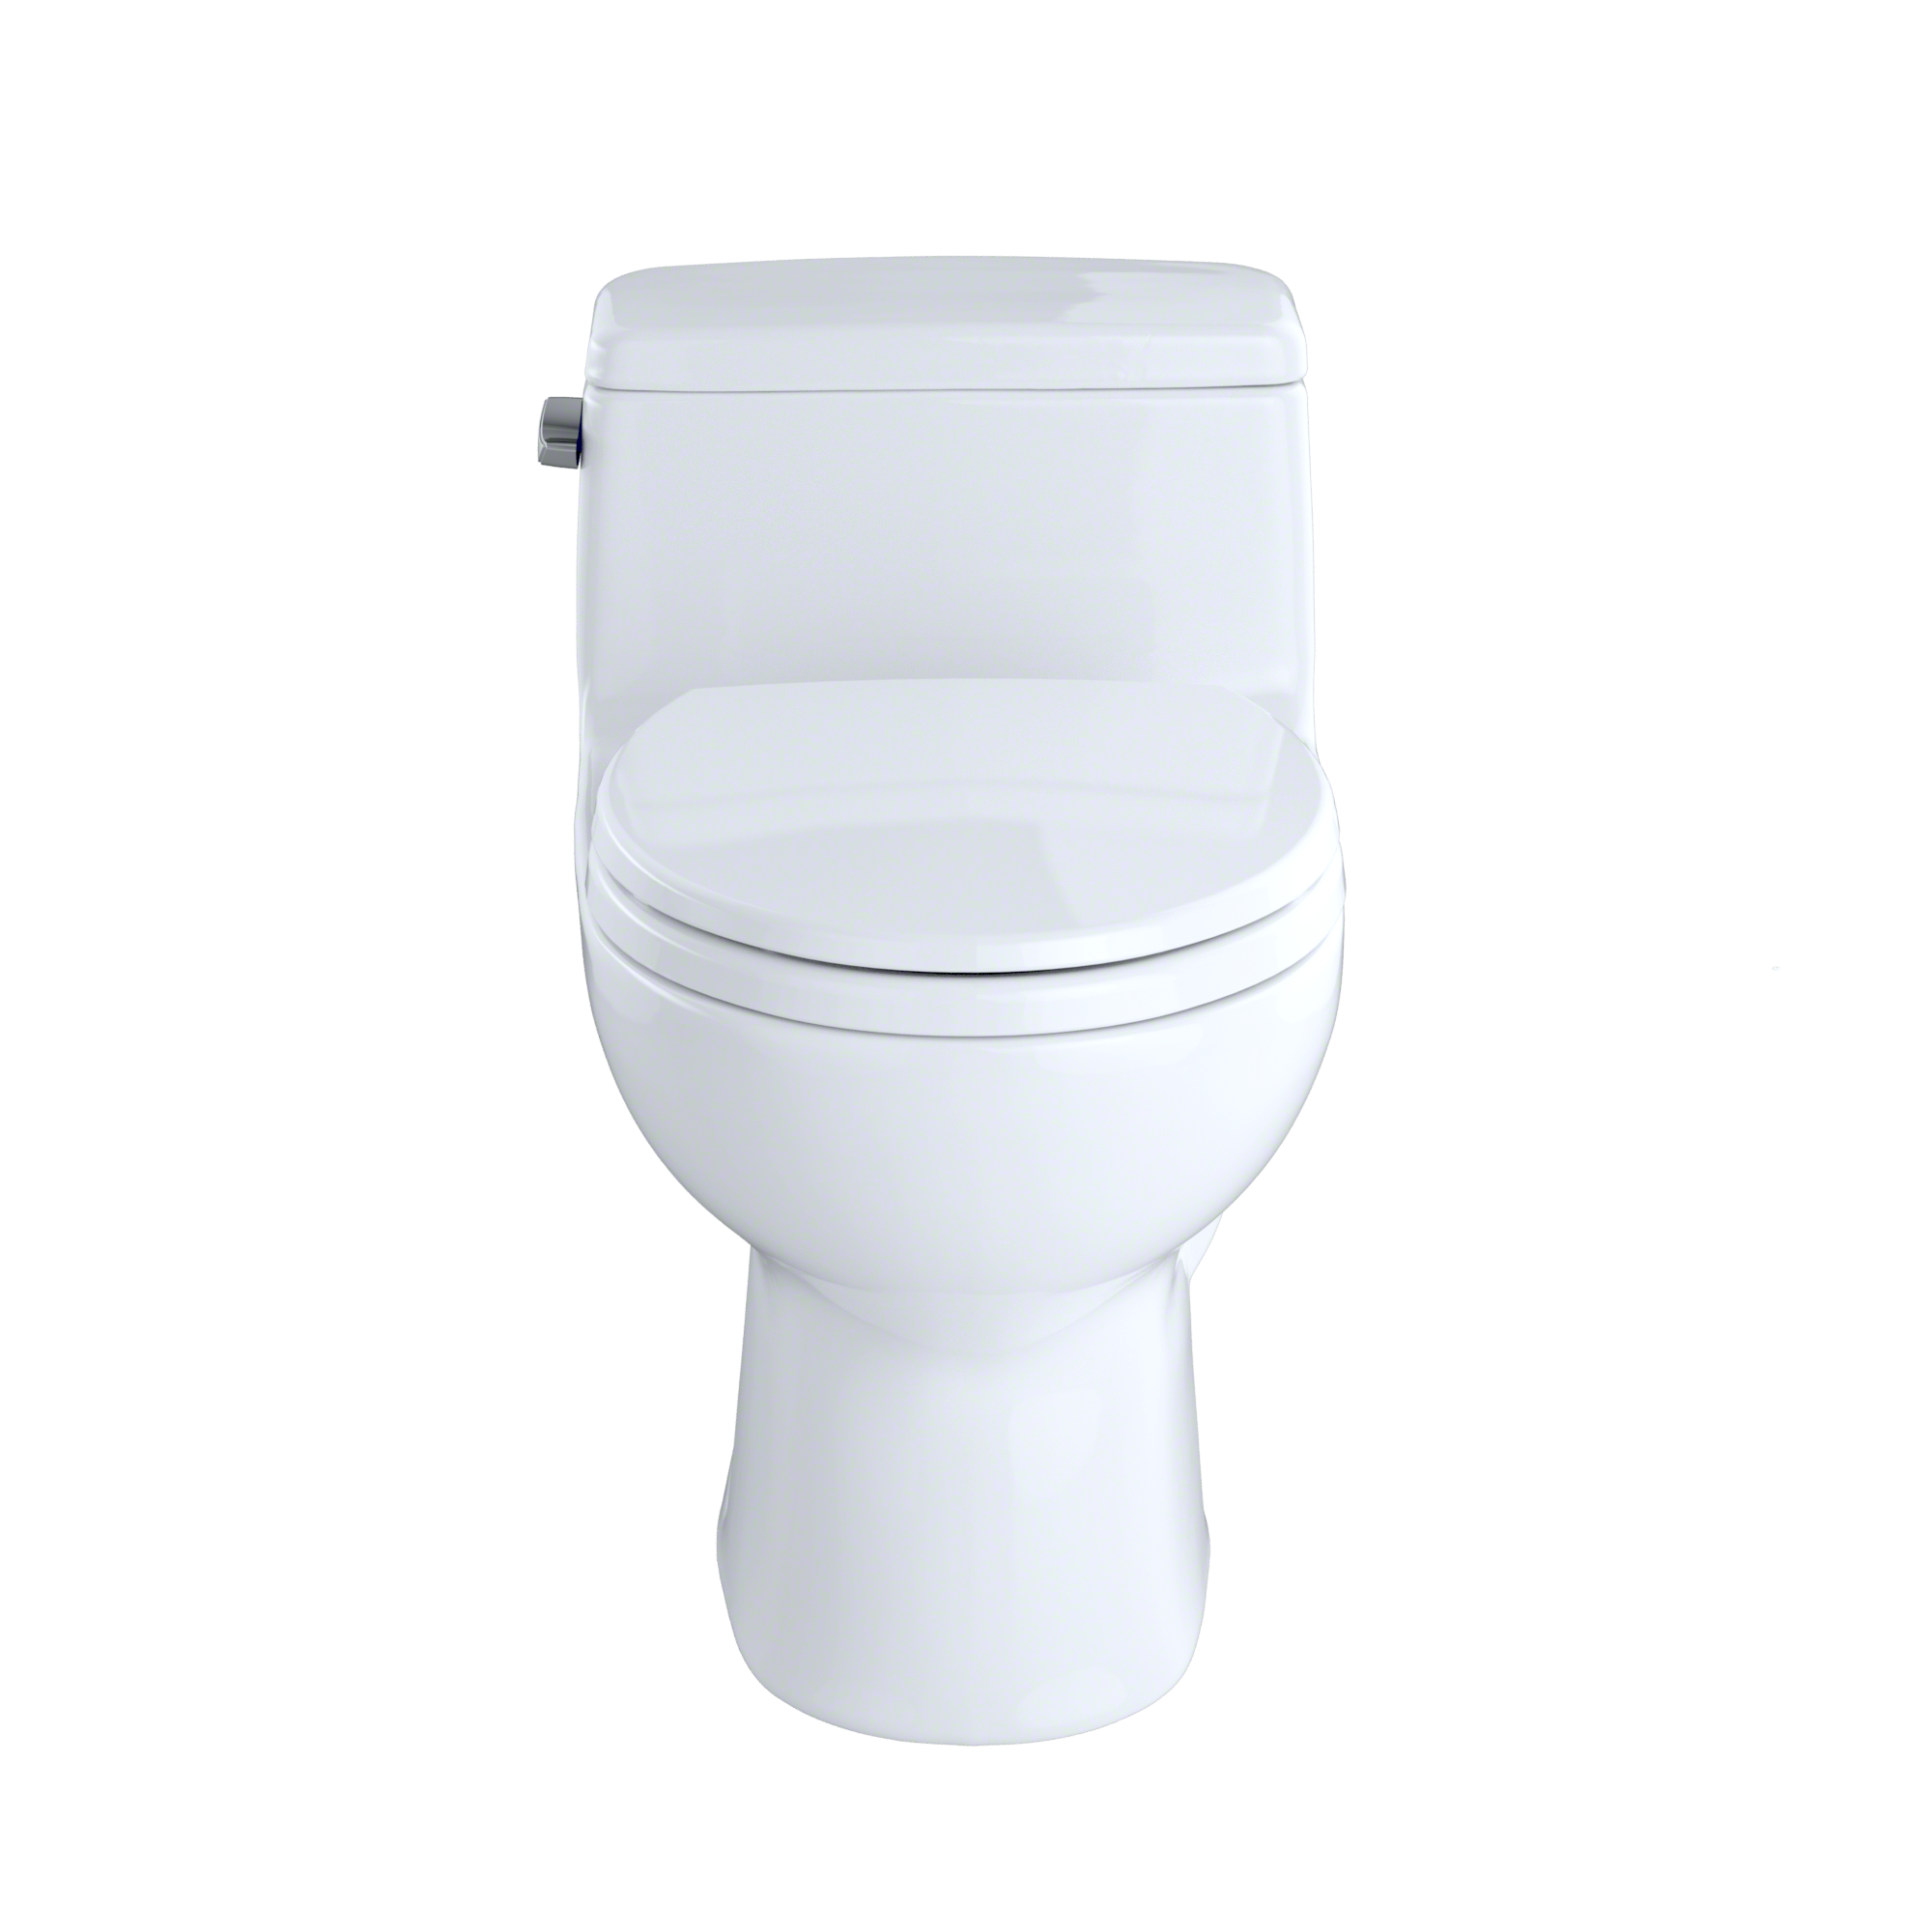 Toto Eco Supreme One Piece Round Bowl 128 Gpf Toilet Cotton